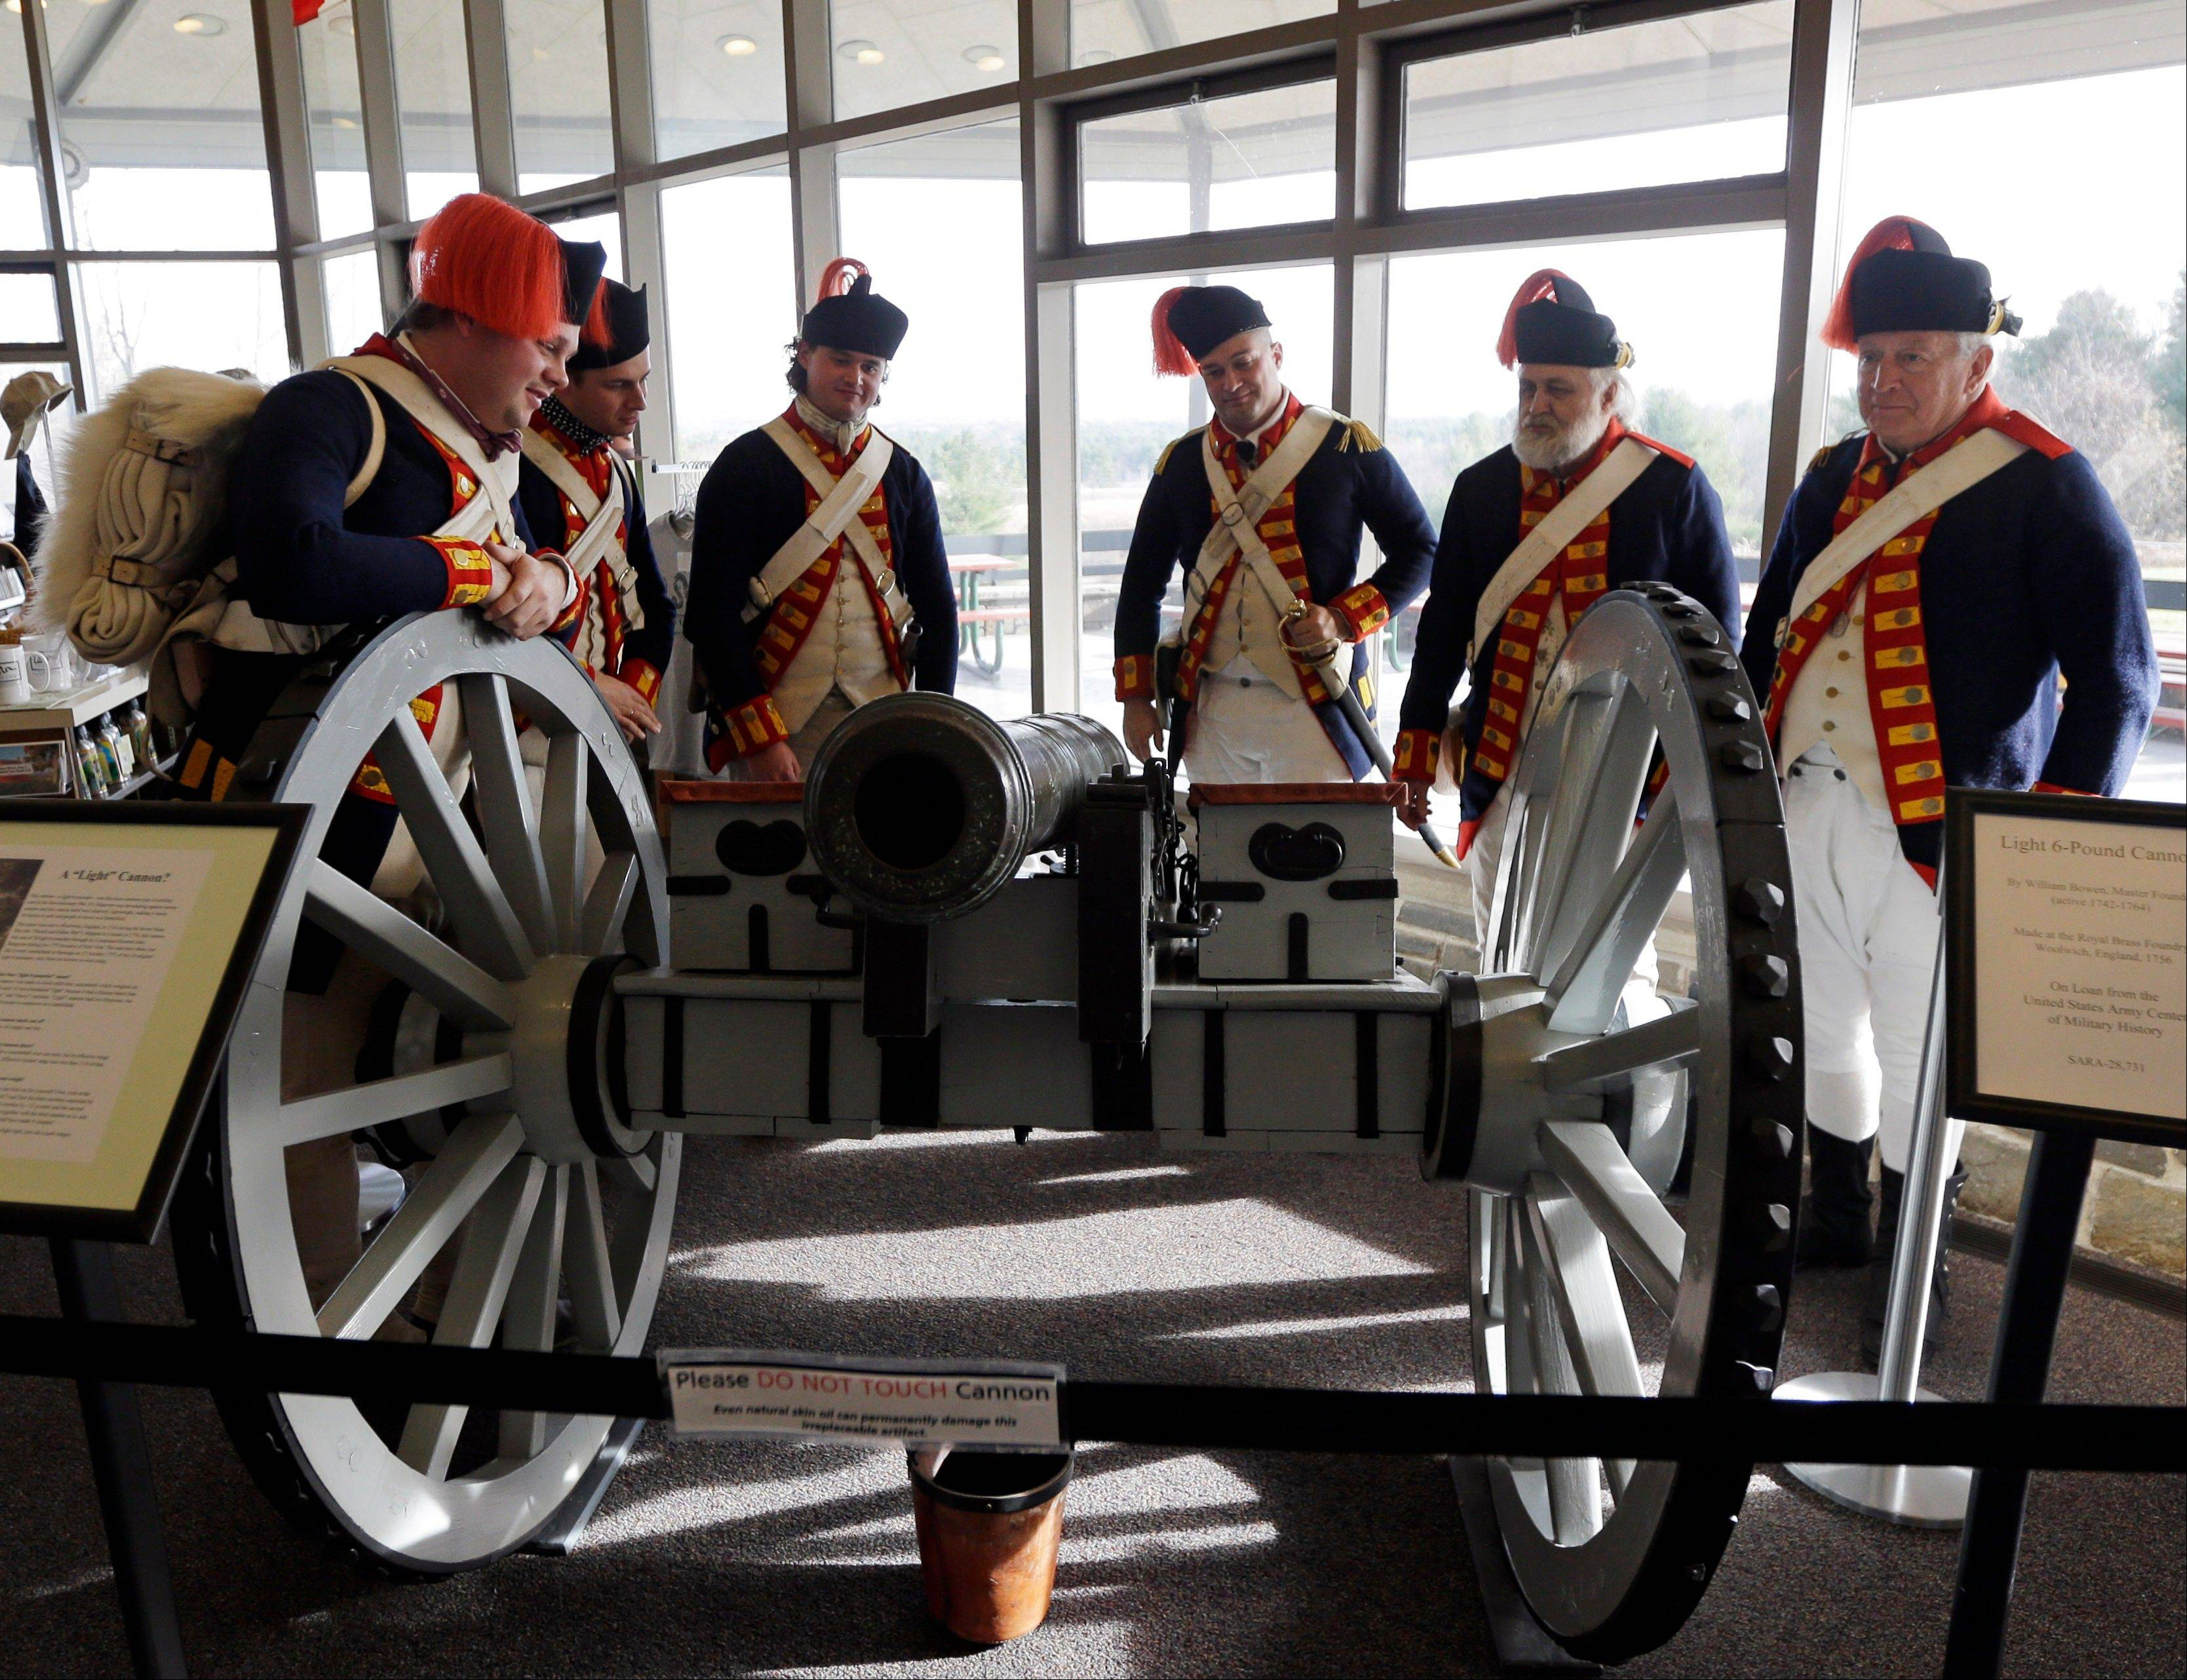 Revolutionary War re-enactors dressed as Royal regimental artillery soldiers stand behind a cannon after unveiling it Friday during a ceremony at Saratoga National Historical Park, in Stillwater, N.Y.